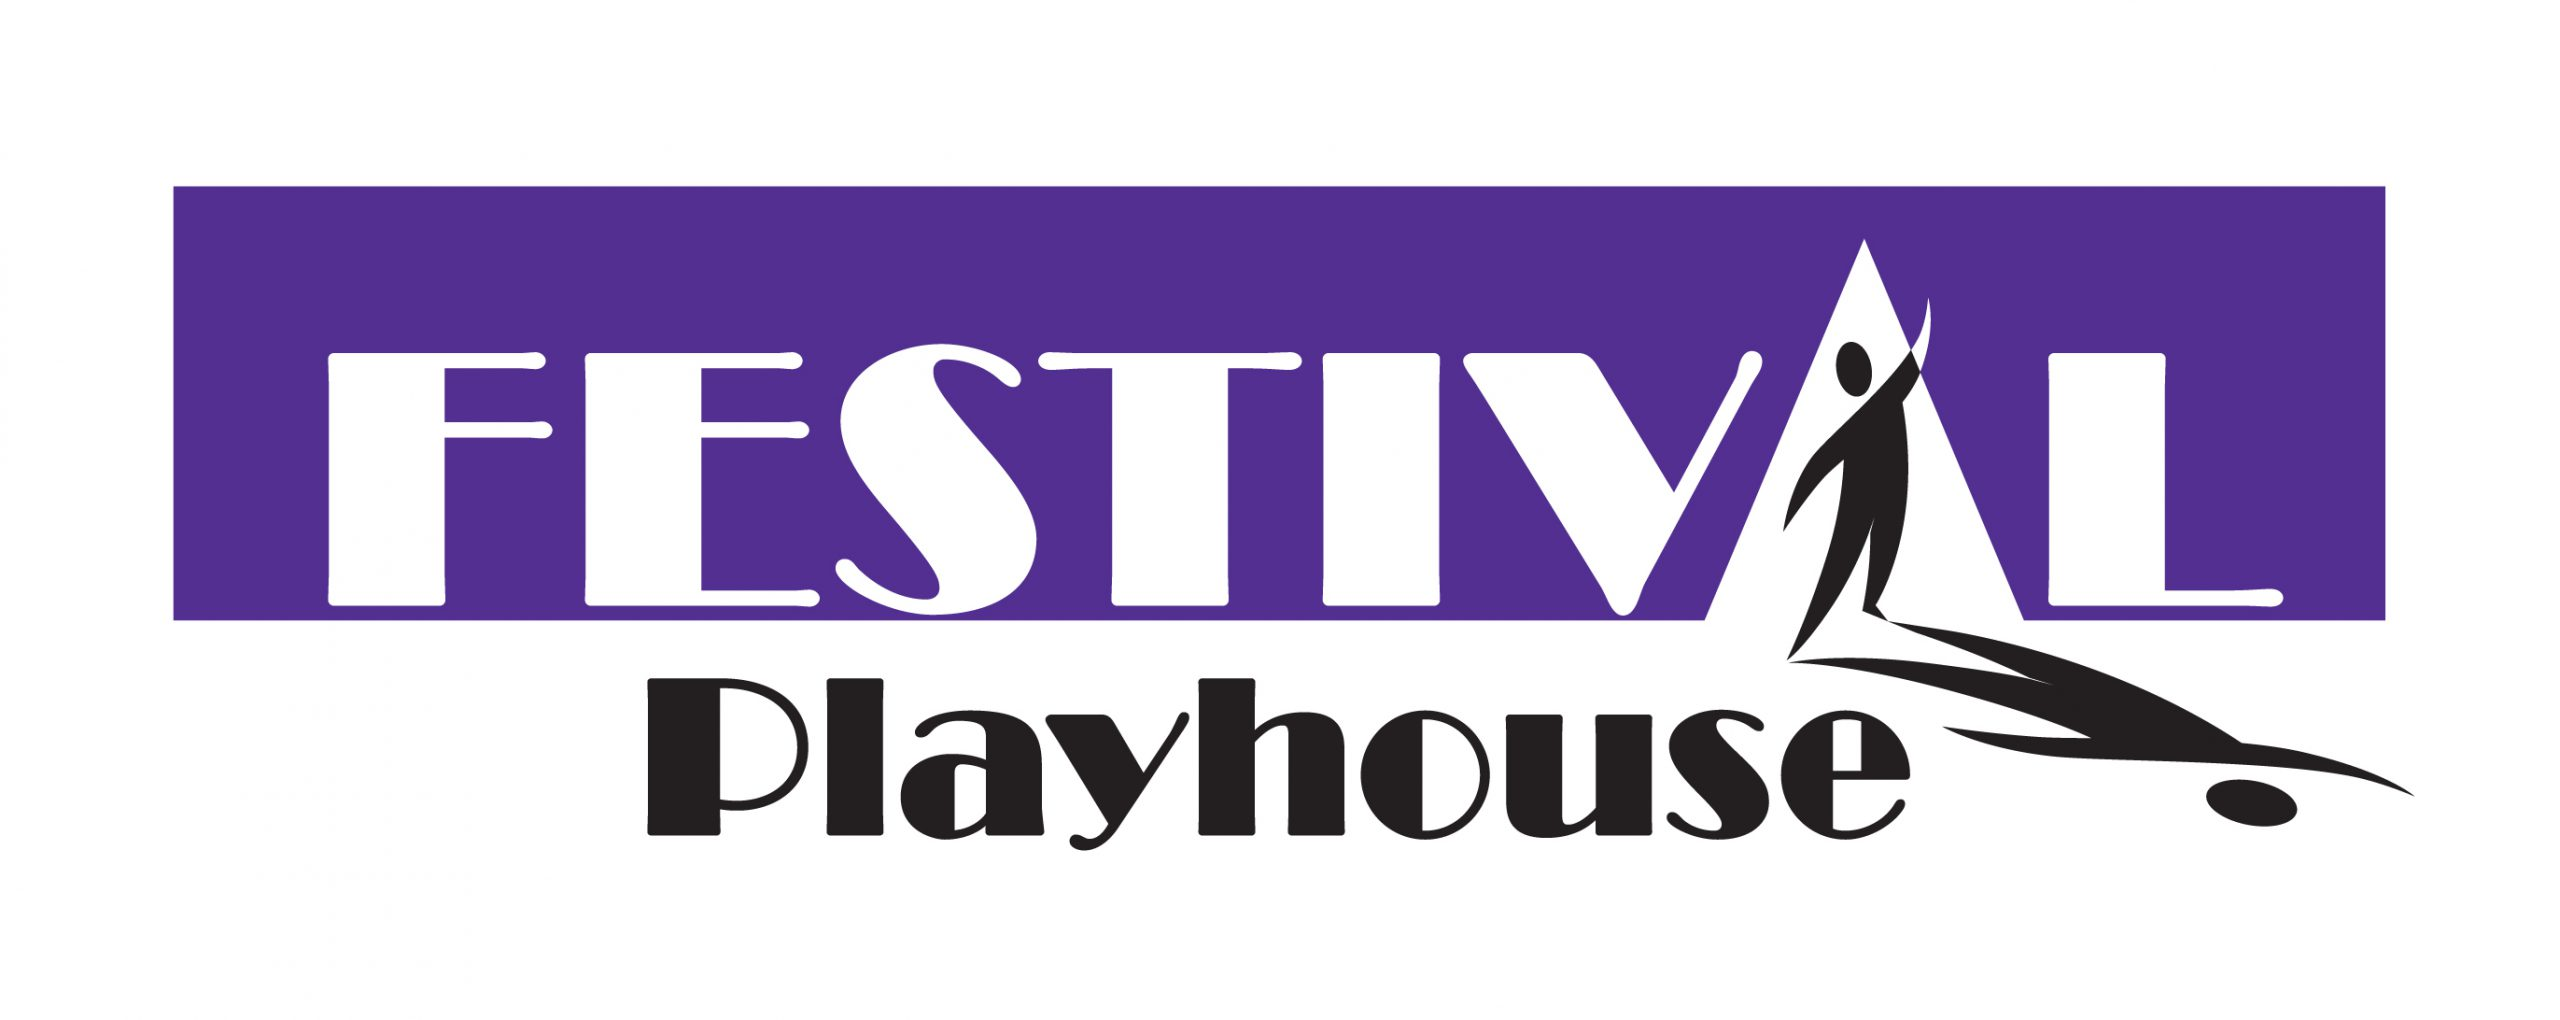 Festival Playhouse Logo